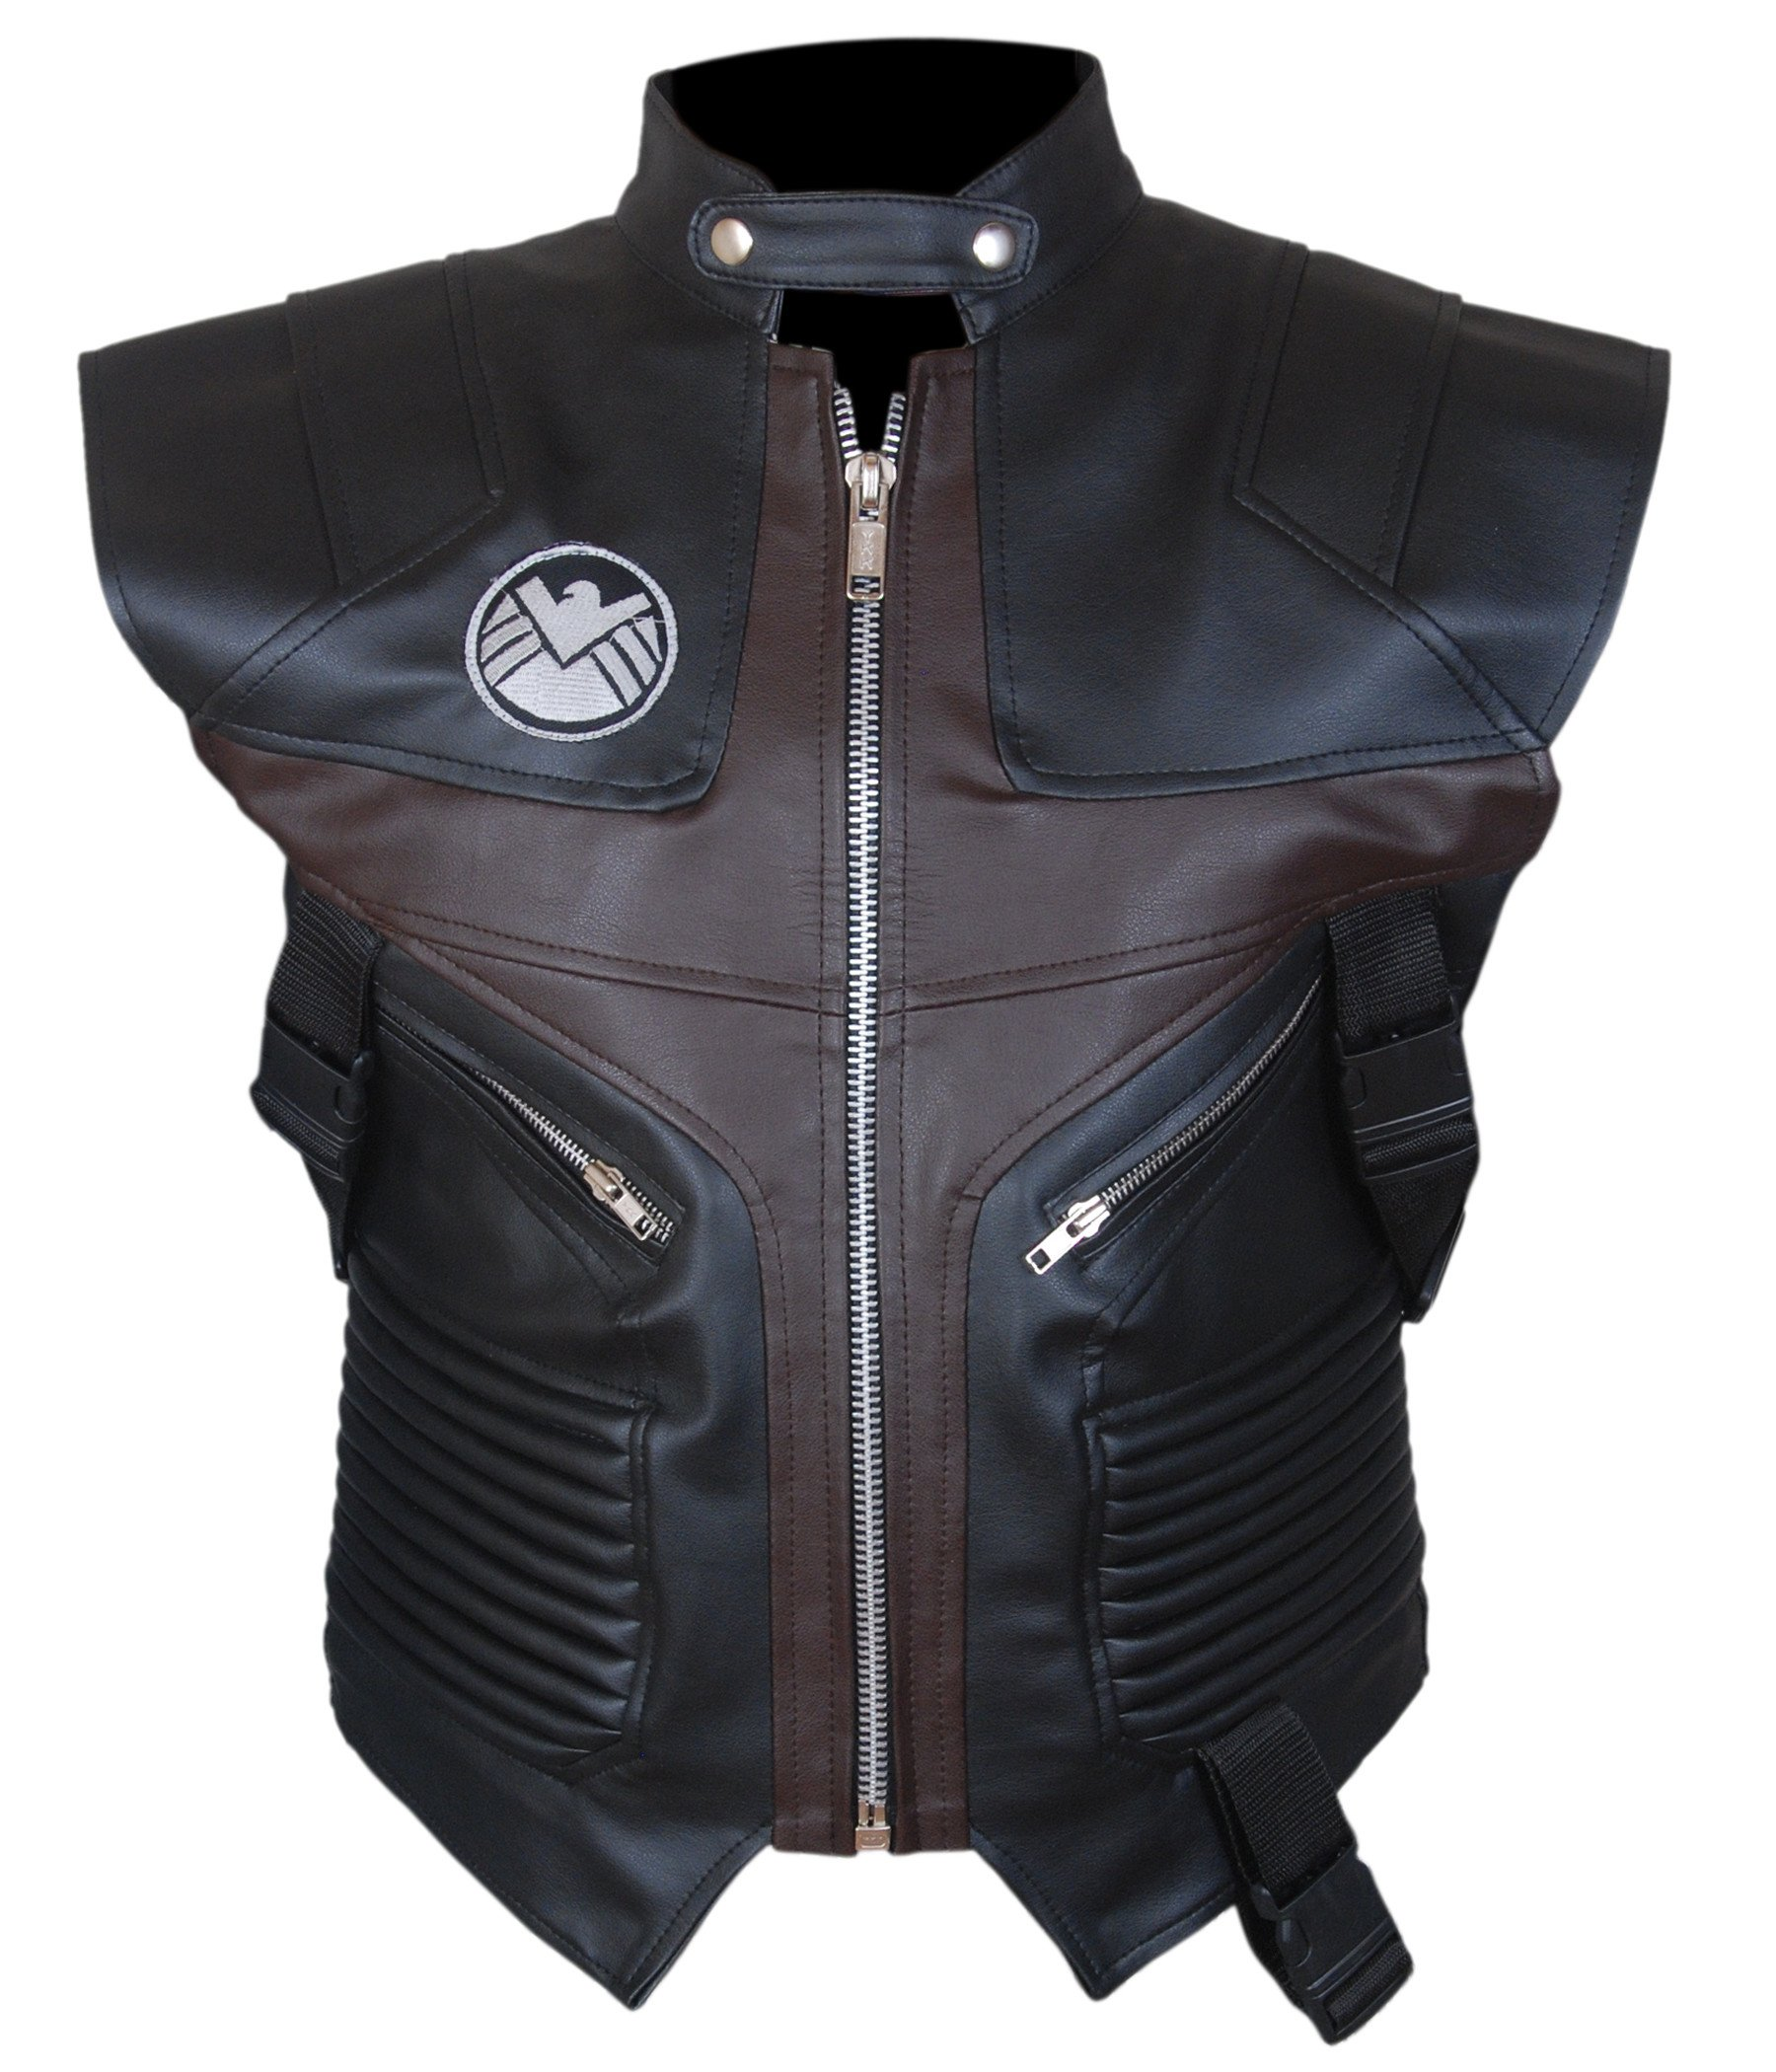 F&H Boy's Avengers Age of Ultron Hawkeye Jeremy Renner Genuine Leather Vest L Black by Flesh & Hide